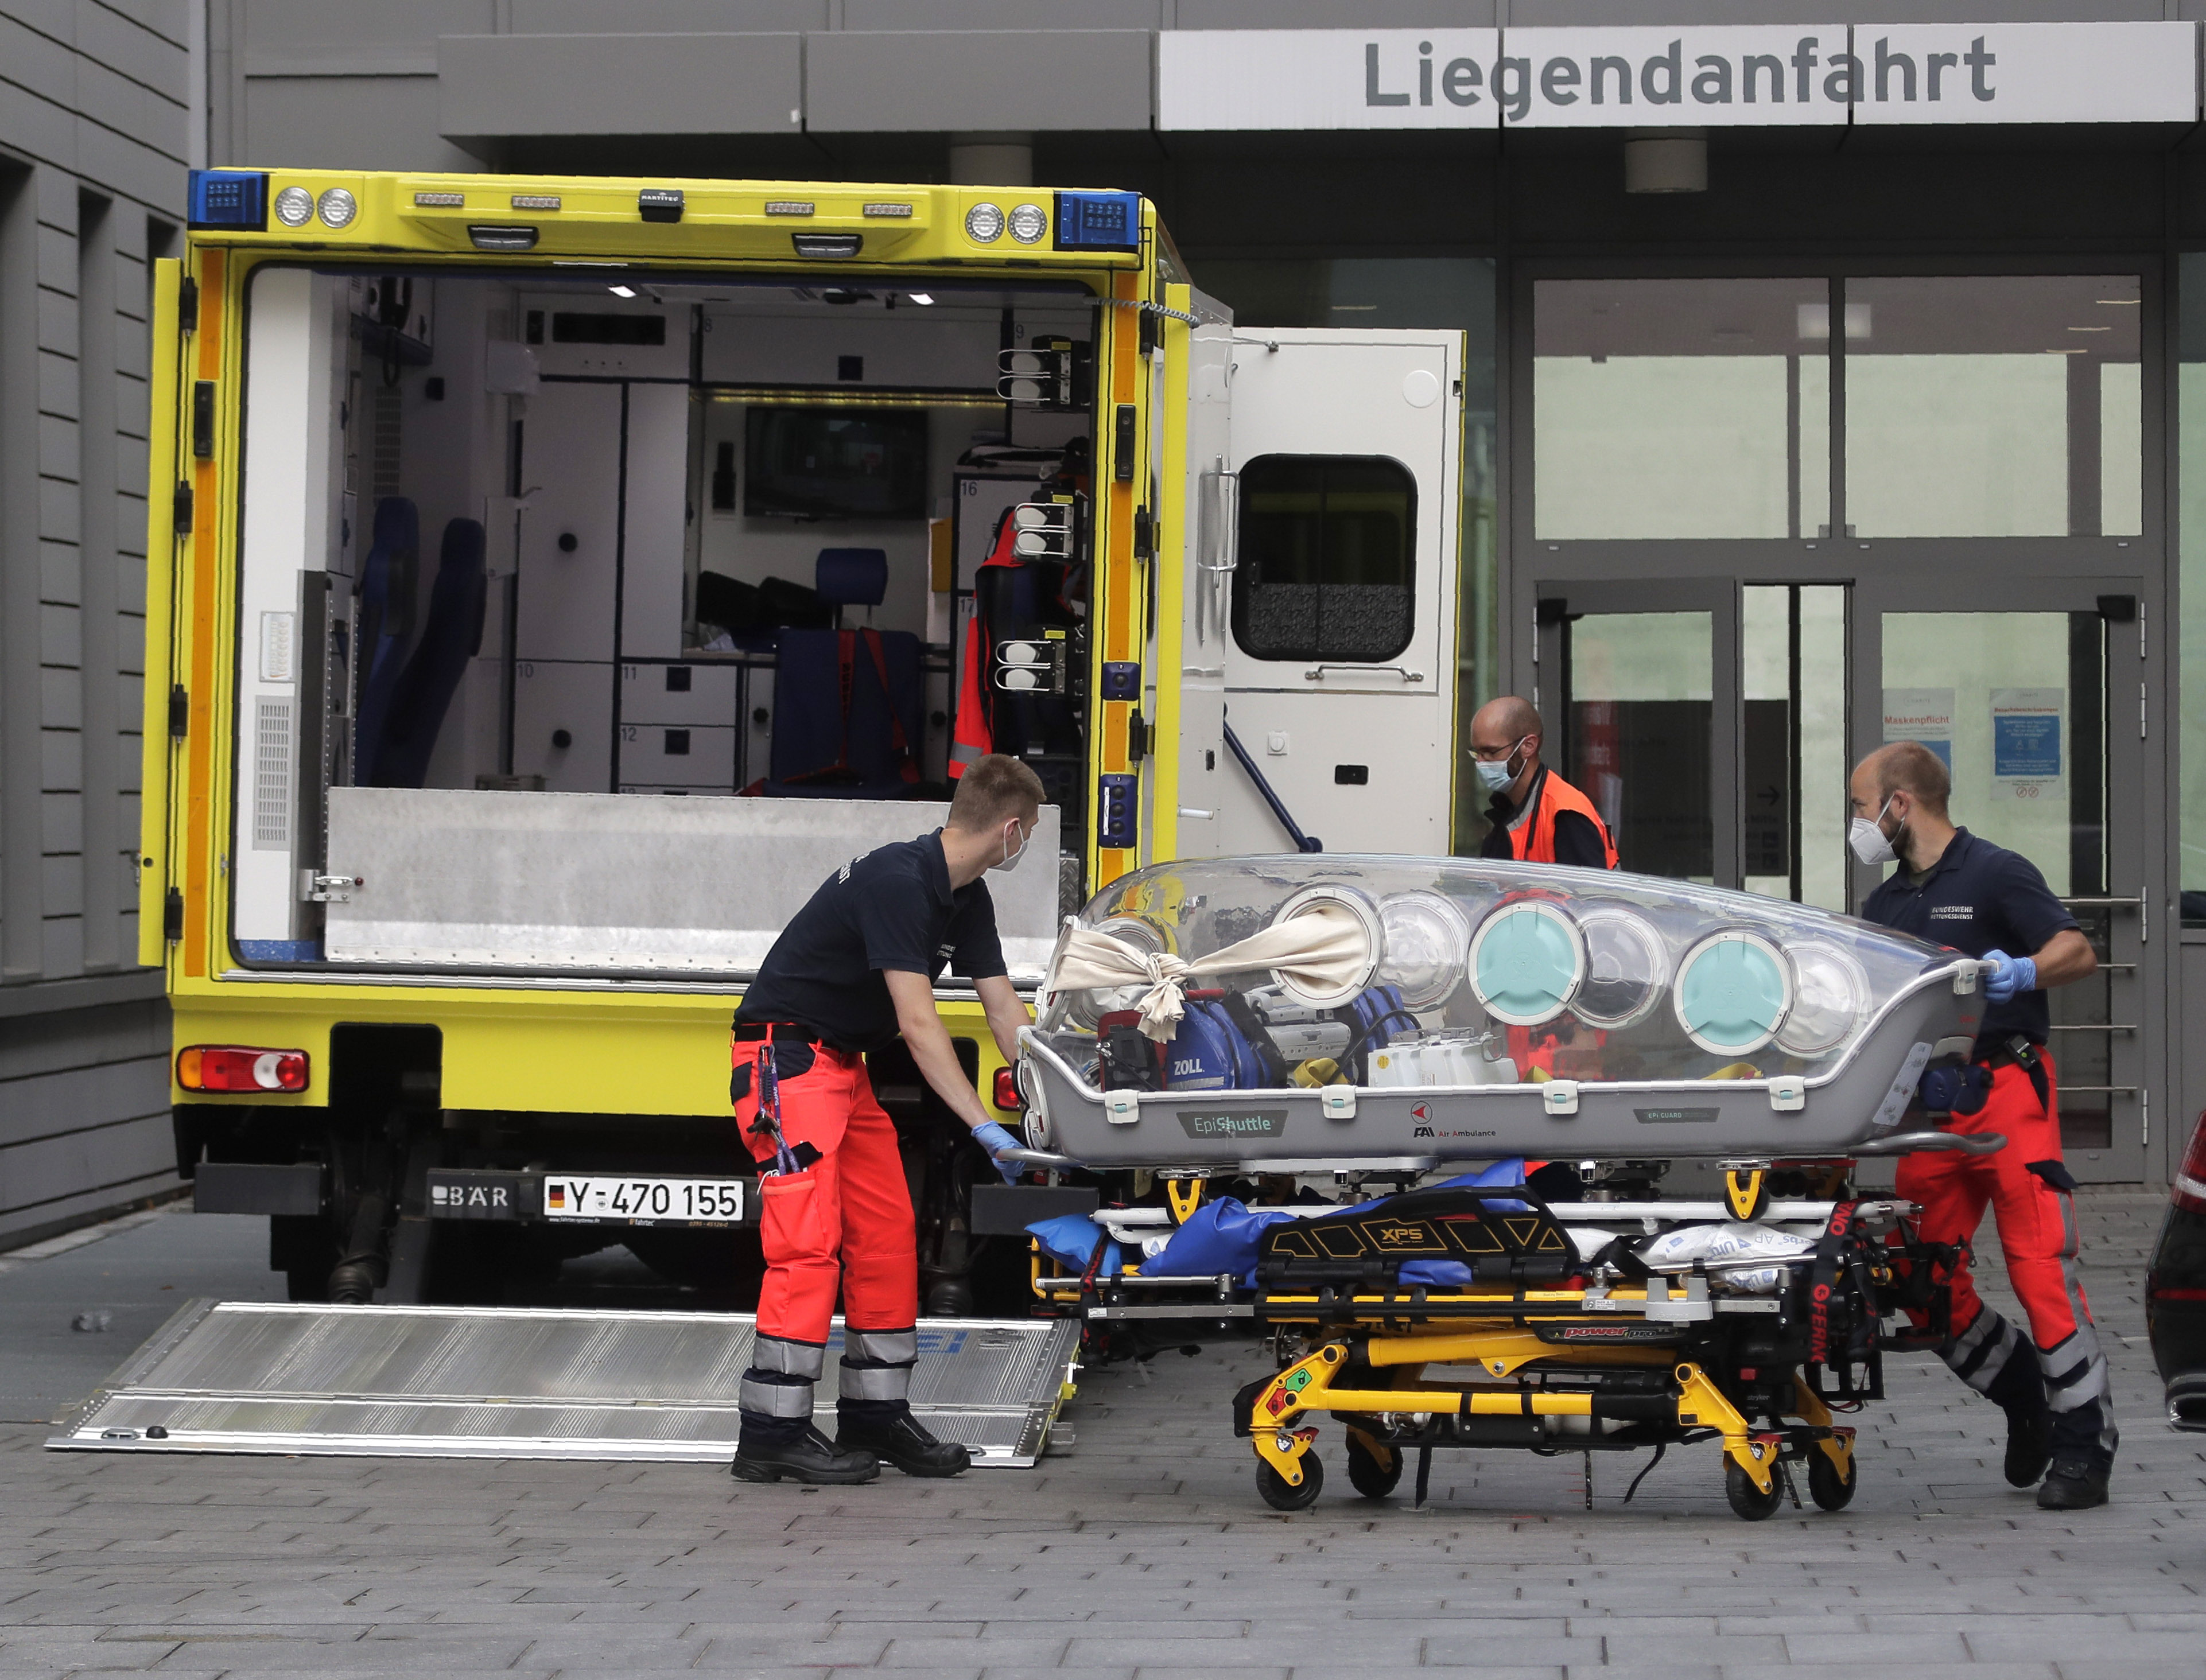 An empty stretcher is carried back into an ambulance which is believed to have transported Alexei Navalny at the emergency entrance of the Charite hospital in Berlin, Germany, Aug.22, 2020.